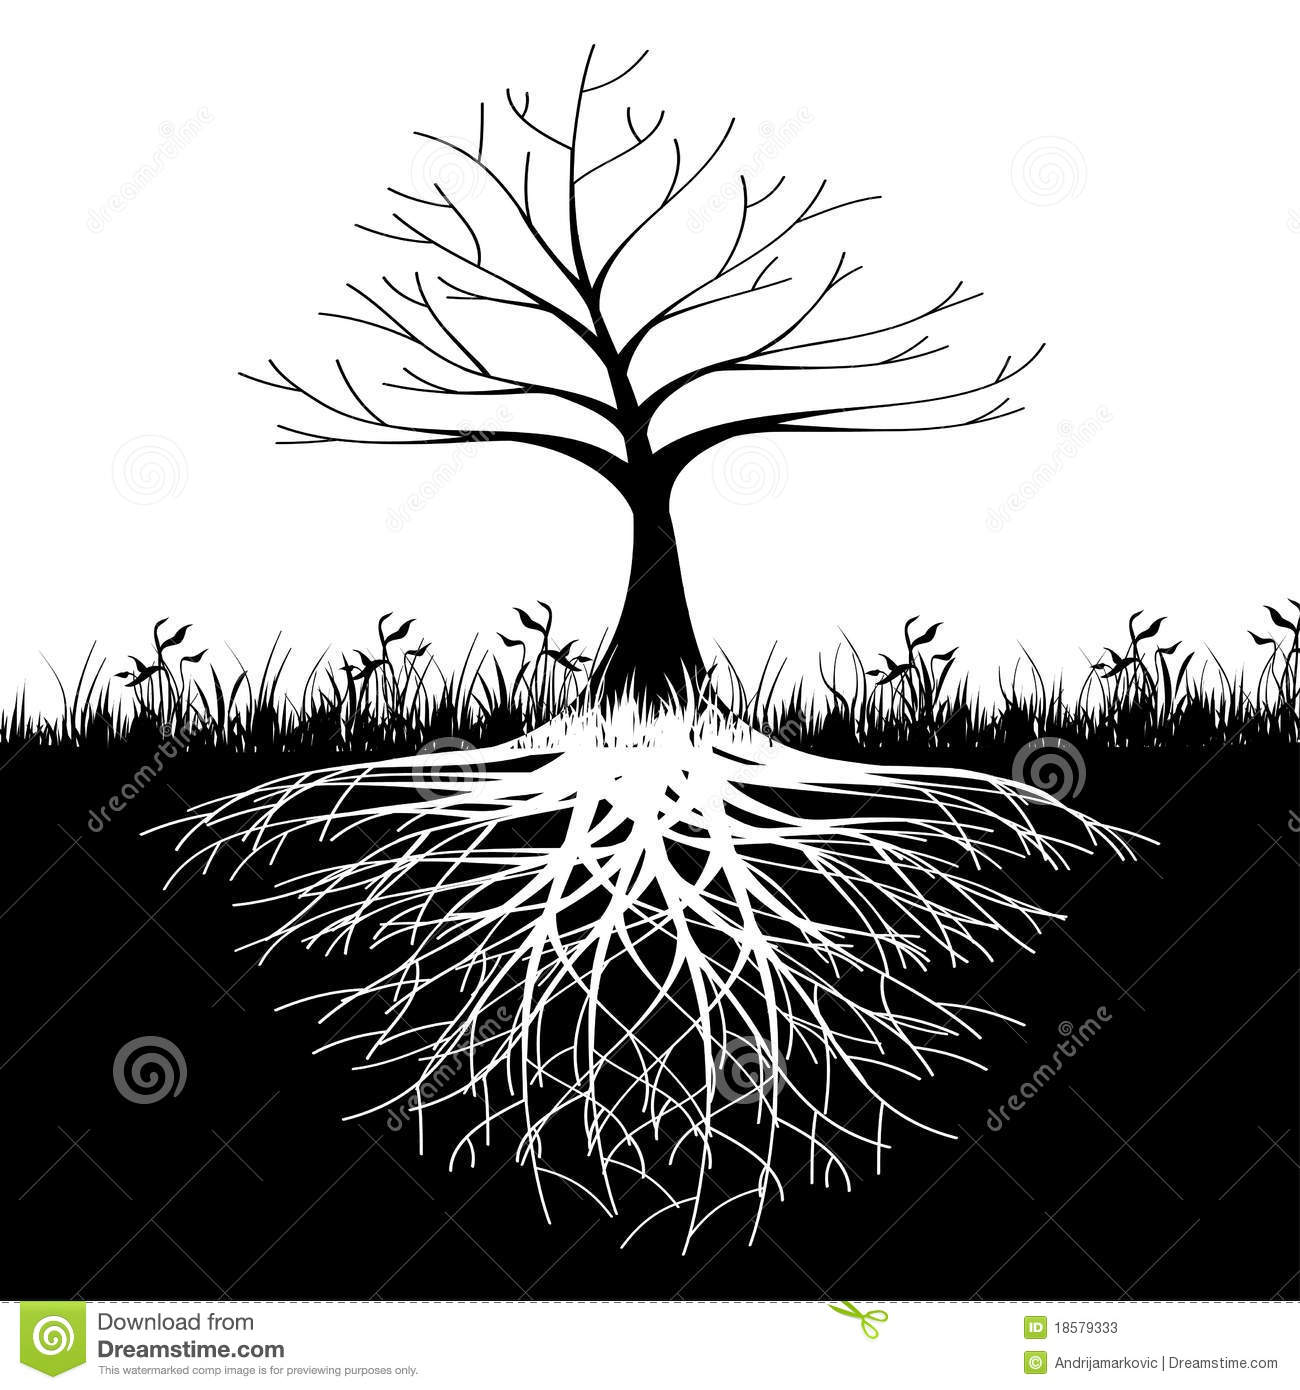 Tree roots silhouette stock vector. Illustration of grass ...